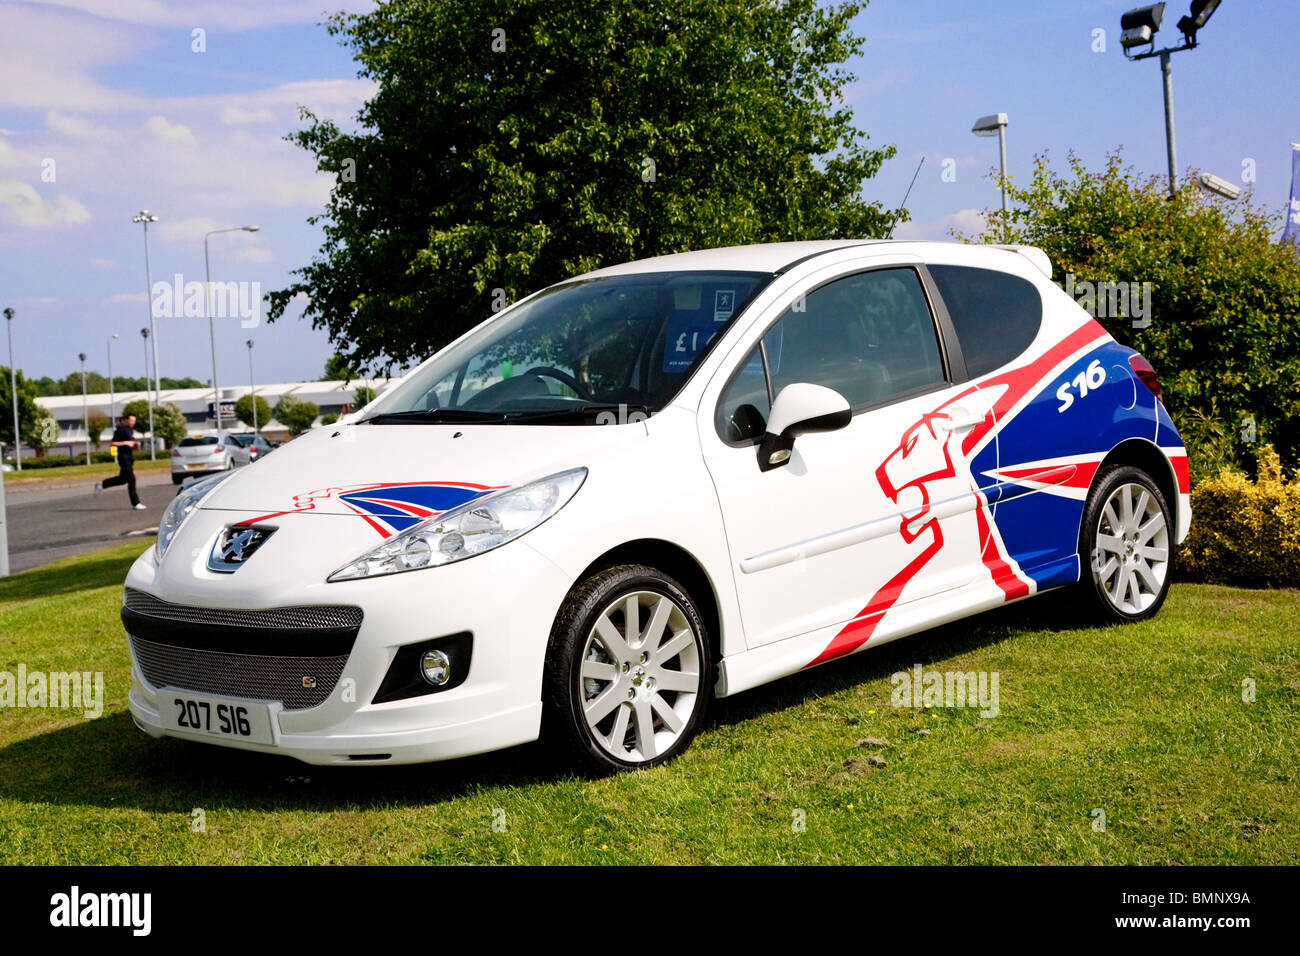 Peugeot 207 S16 with special lion livery. - Stock Image